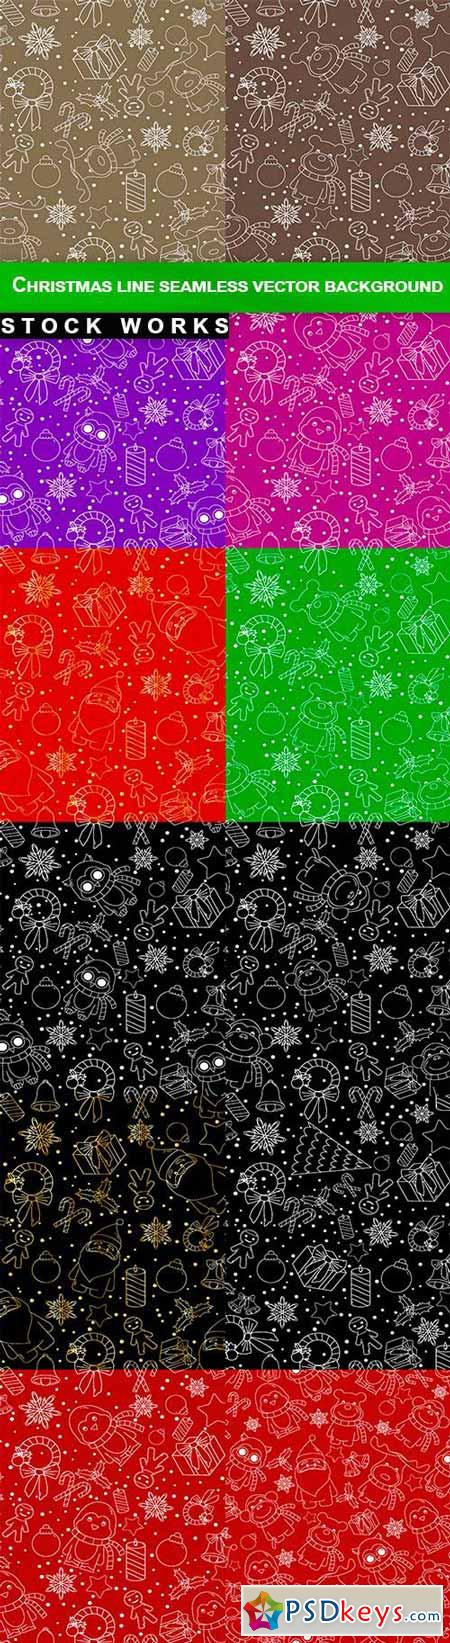 Christmas line icons seamless vector background - 12 EPS